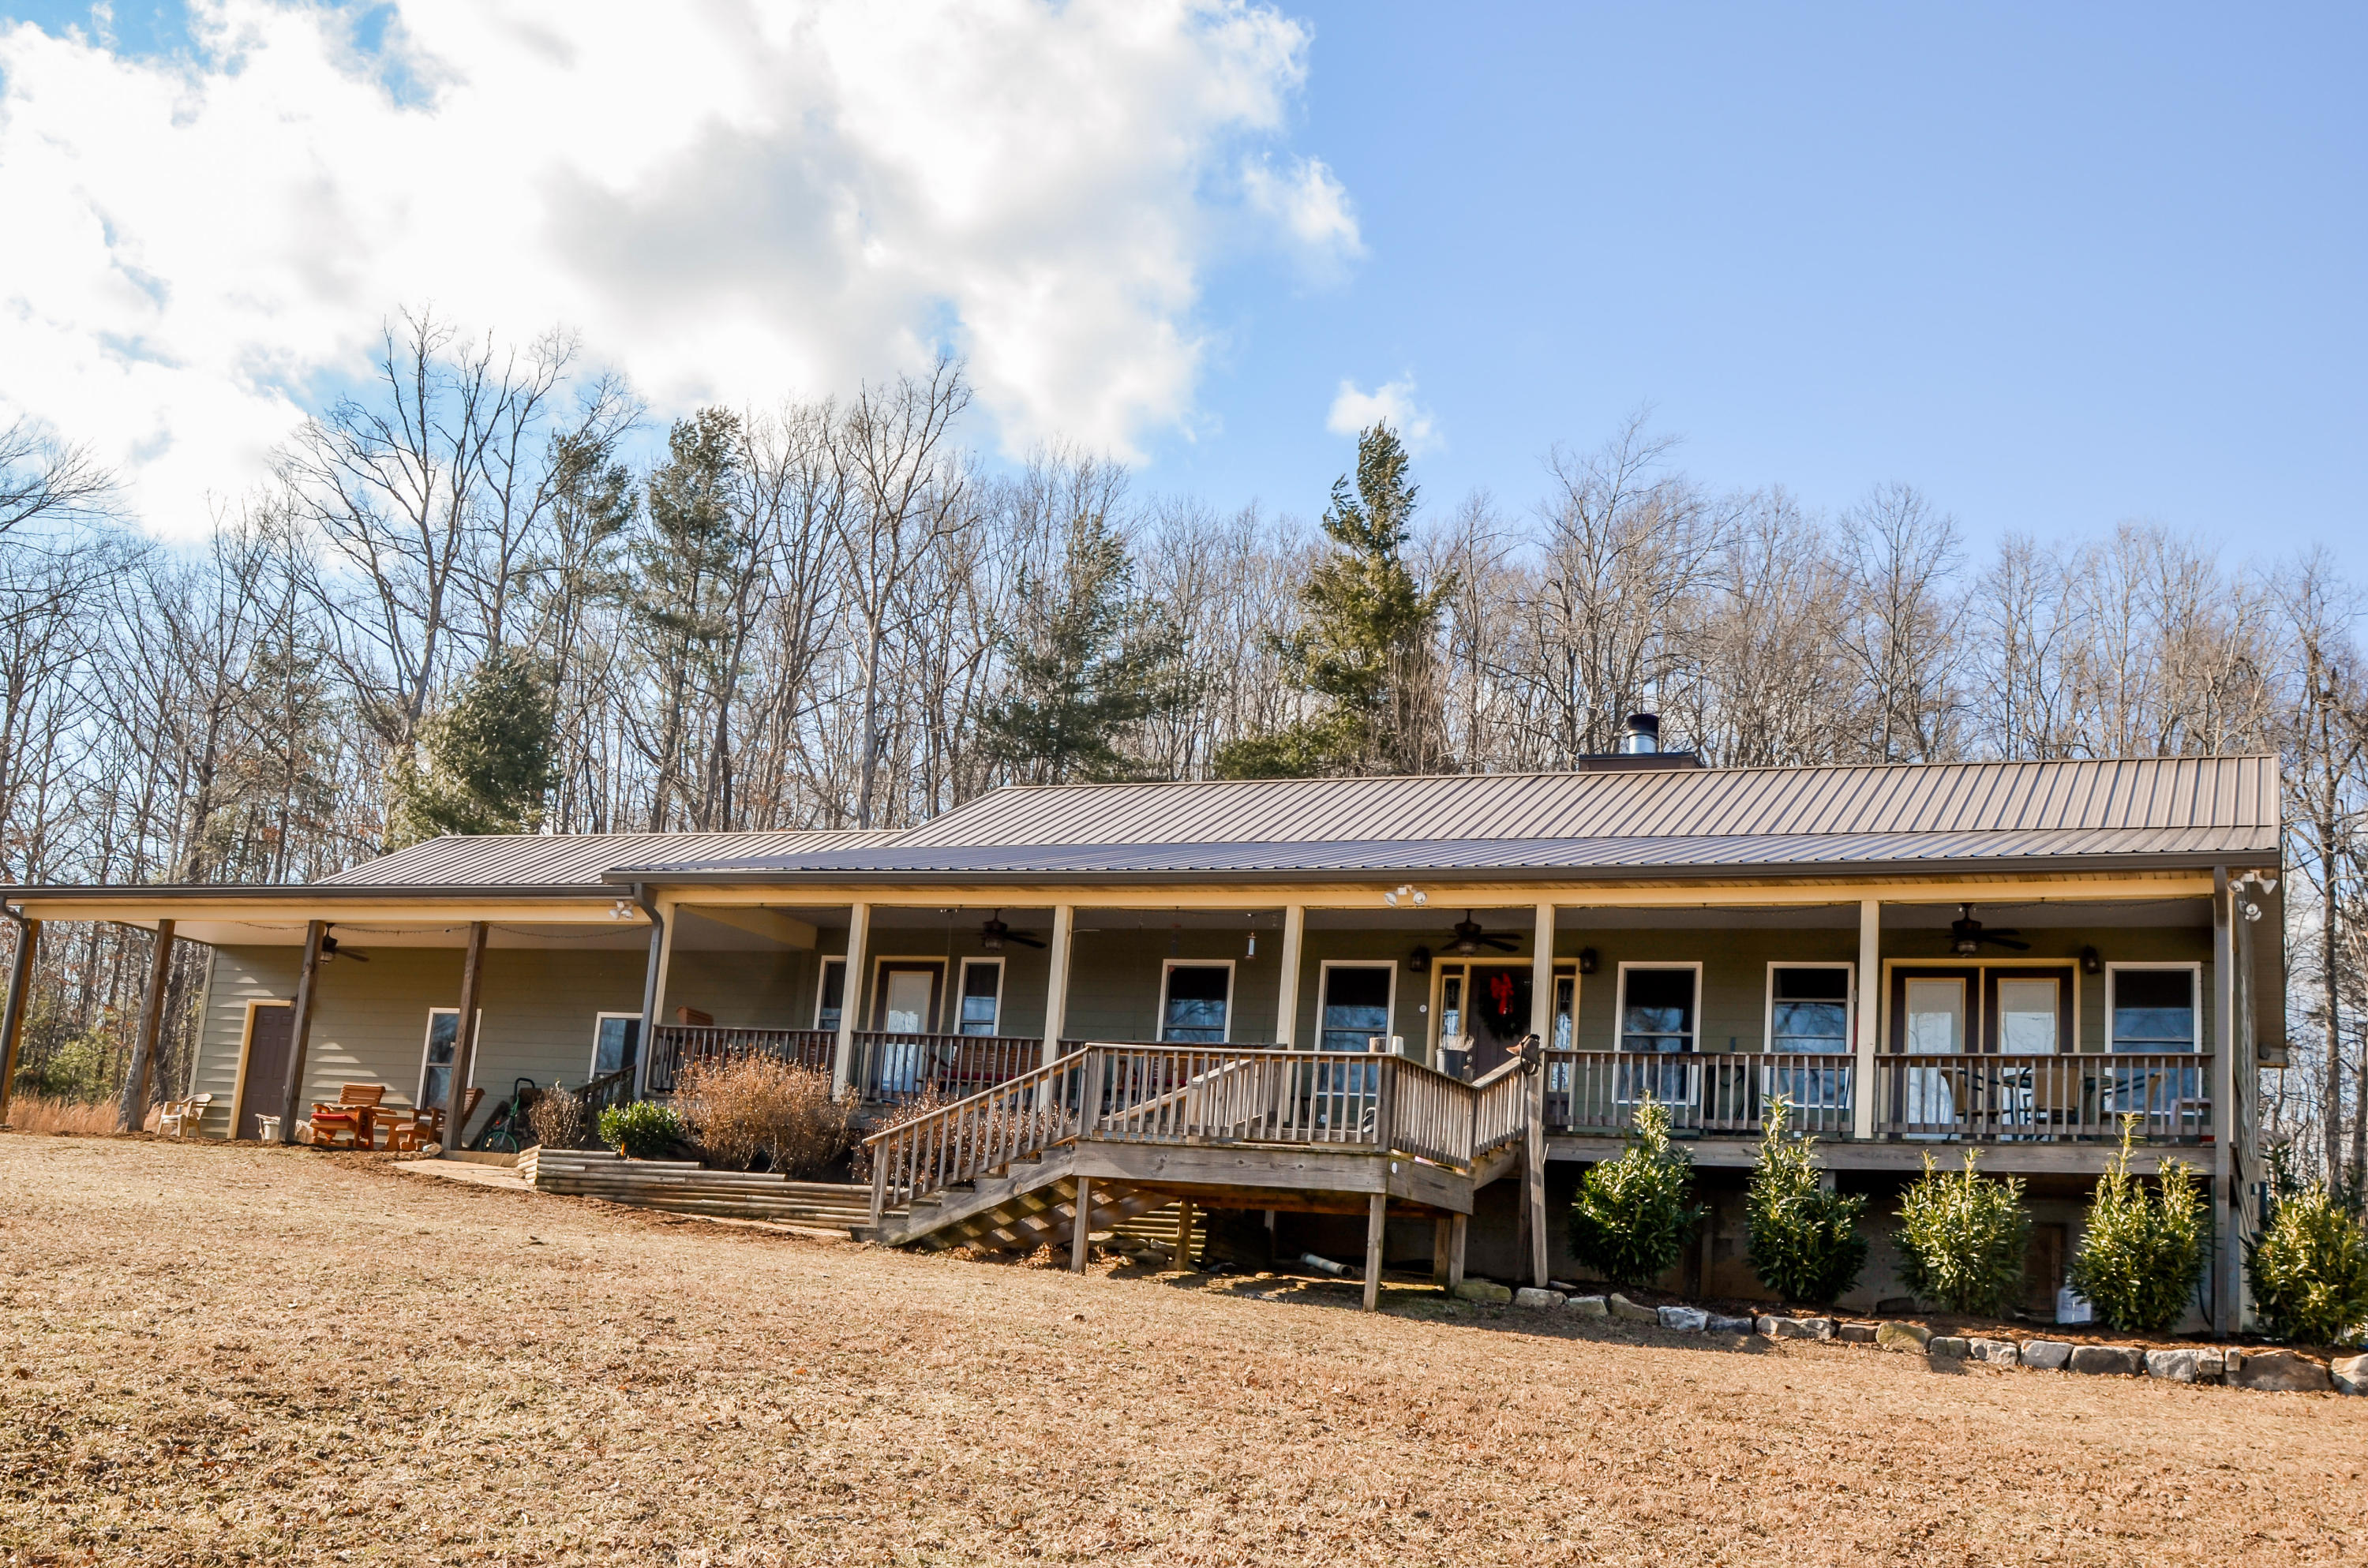 104 Zac Rd, Sunbright, Tennessee 37872, 3 Bedrooms Bedrooms, ,2 BathroomsBathrooms,Single Family,For Sale,Zac,1068736